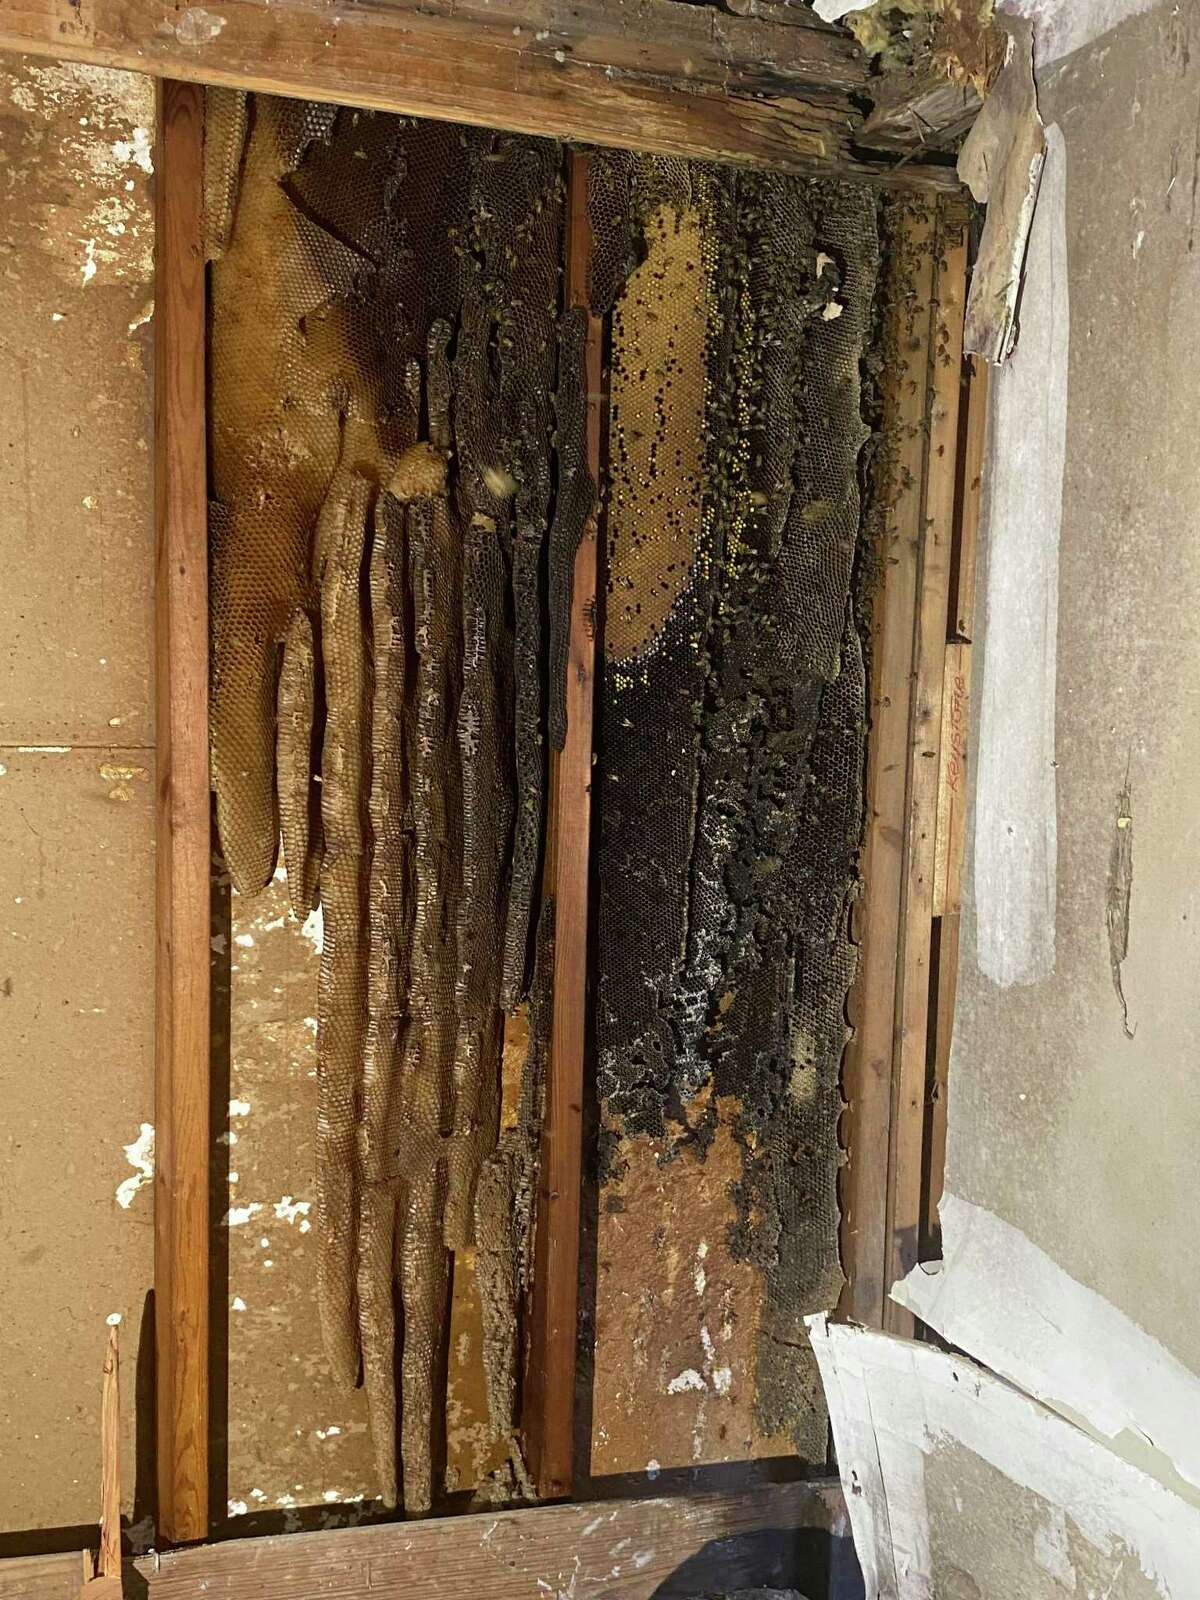 A 4-foot-wide, 8-foot-tall bee hive was found in a wall of a South Bexar County home where a man was killed by the bees while mowing his lawn on July 12.